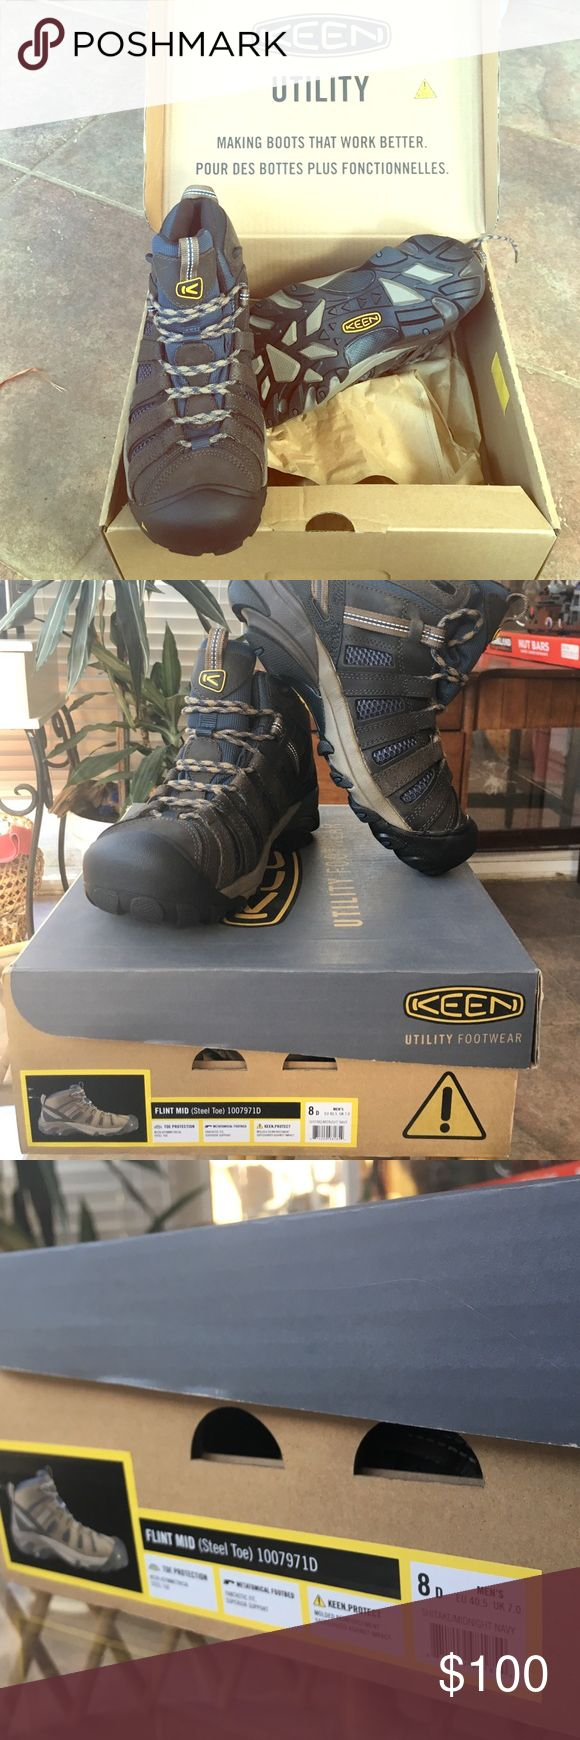 Keen Steel Toe: NIB💚🍀🐢 These Keen Flint Mid Steel Toe Boot Men's size 8 have never been worn. Thank you for shopping my closet today!💚🍀🐢 Keen Shoes Boots